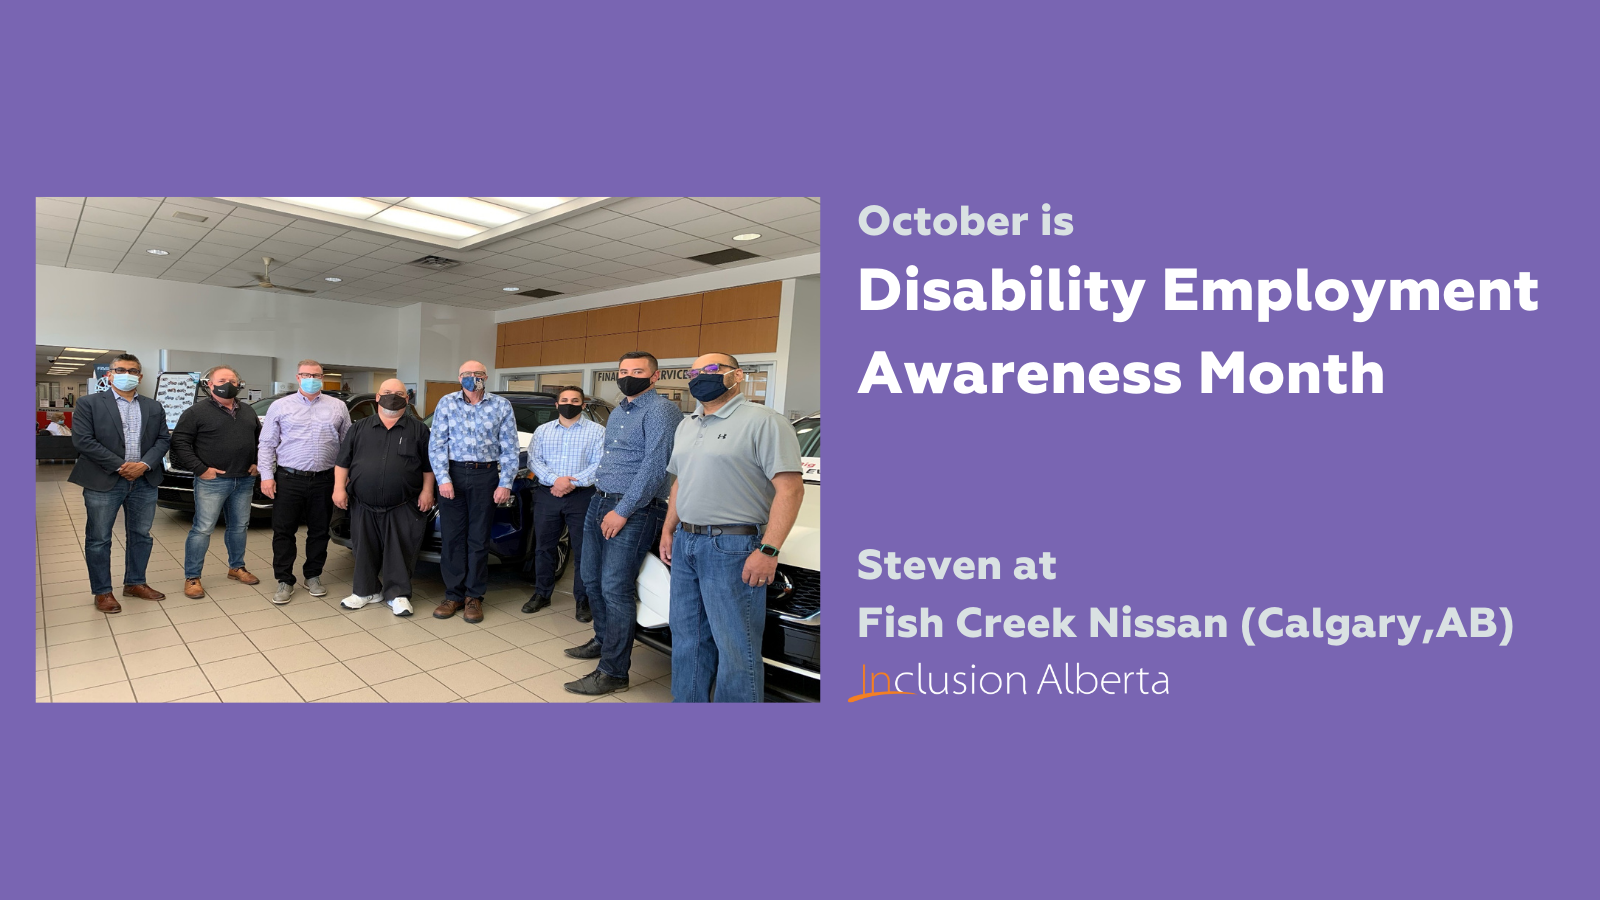 October is Disability Employment Awareness Month. Steven at Fish Creek Nissan (Calgary, AB). Inclusion Alberta. Steven is picture posing in a car dealership showroom with several colleagues.